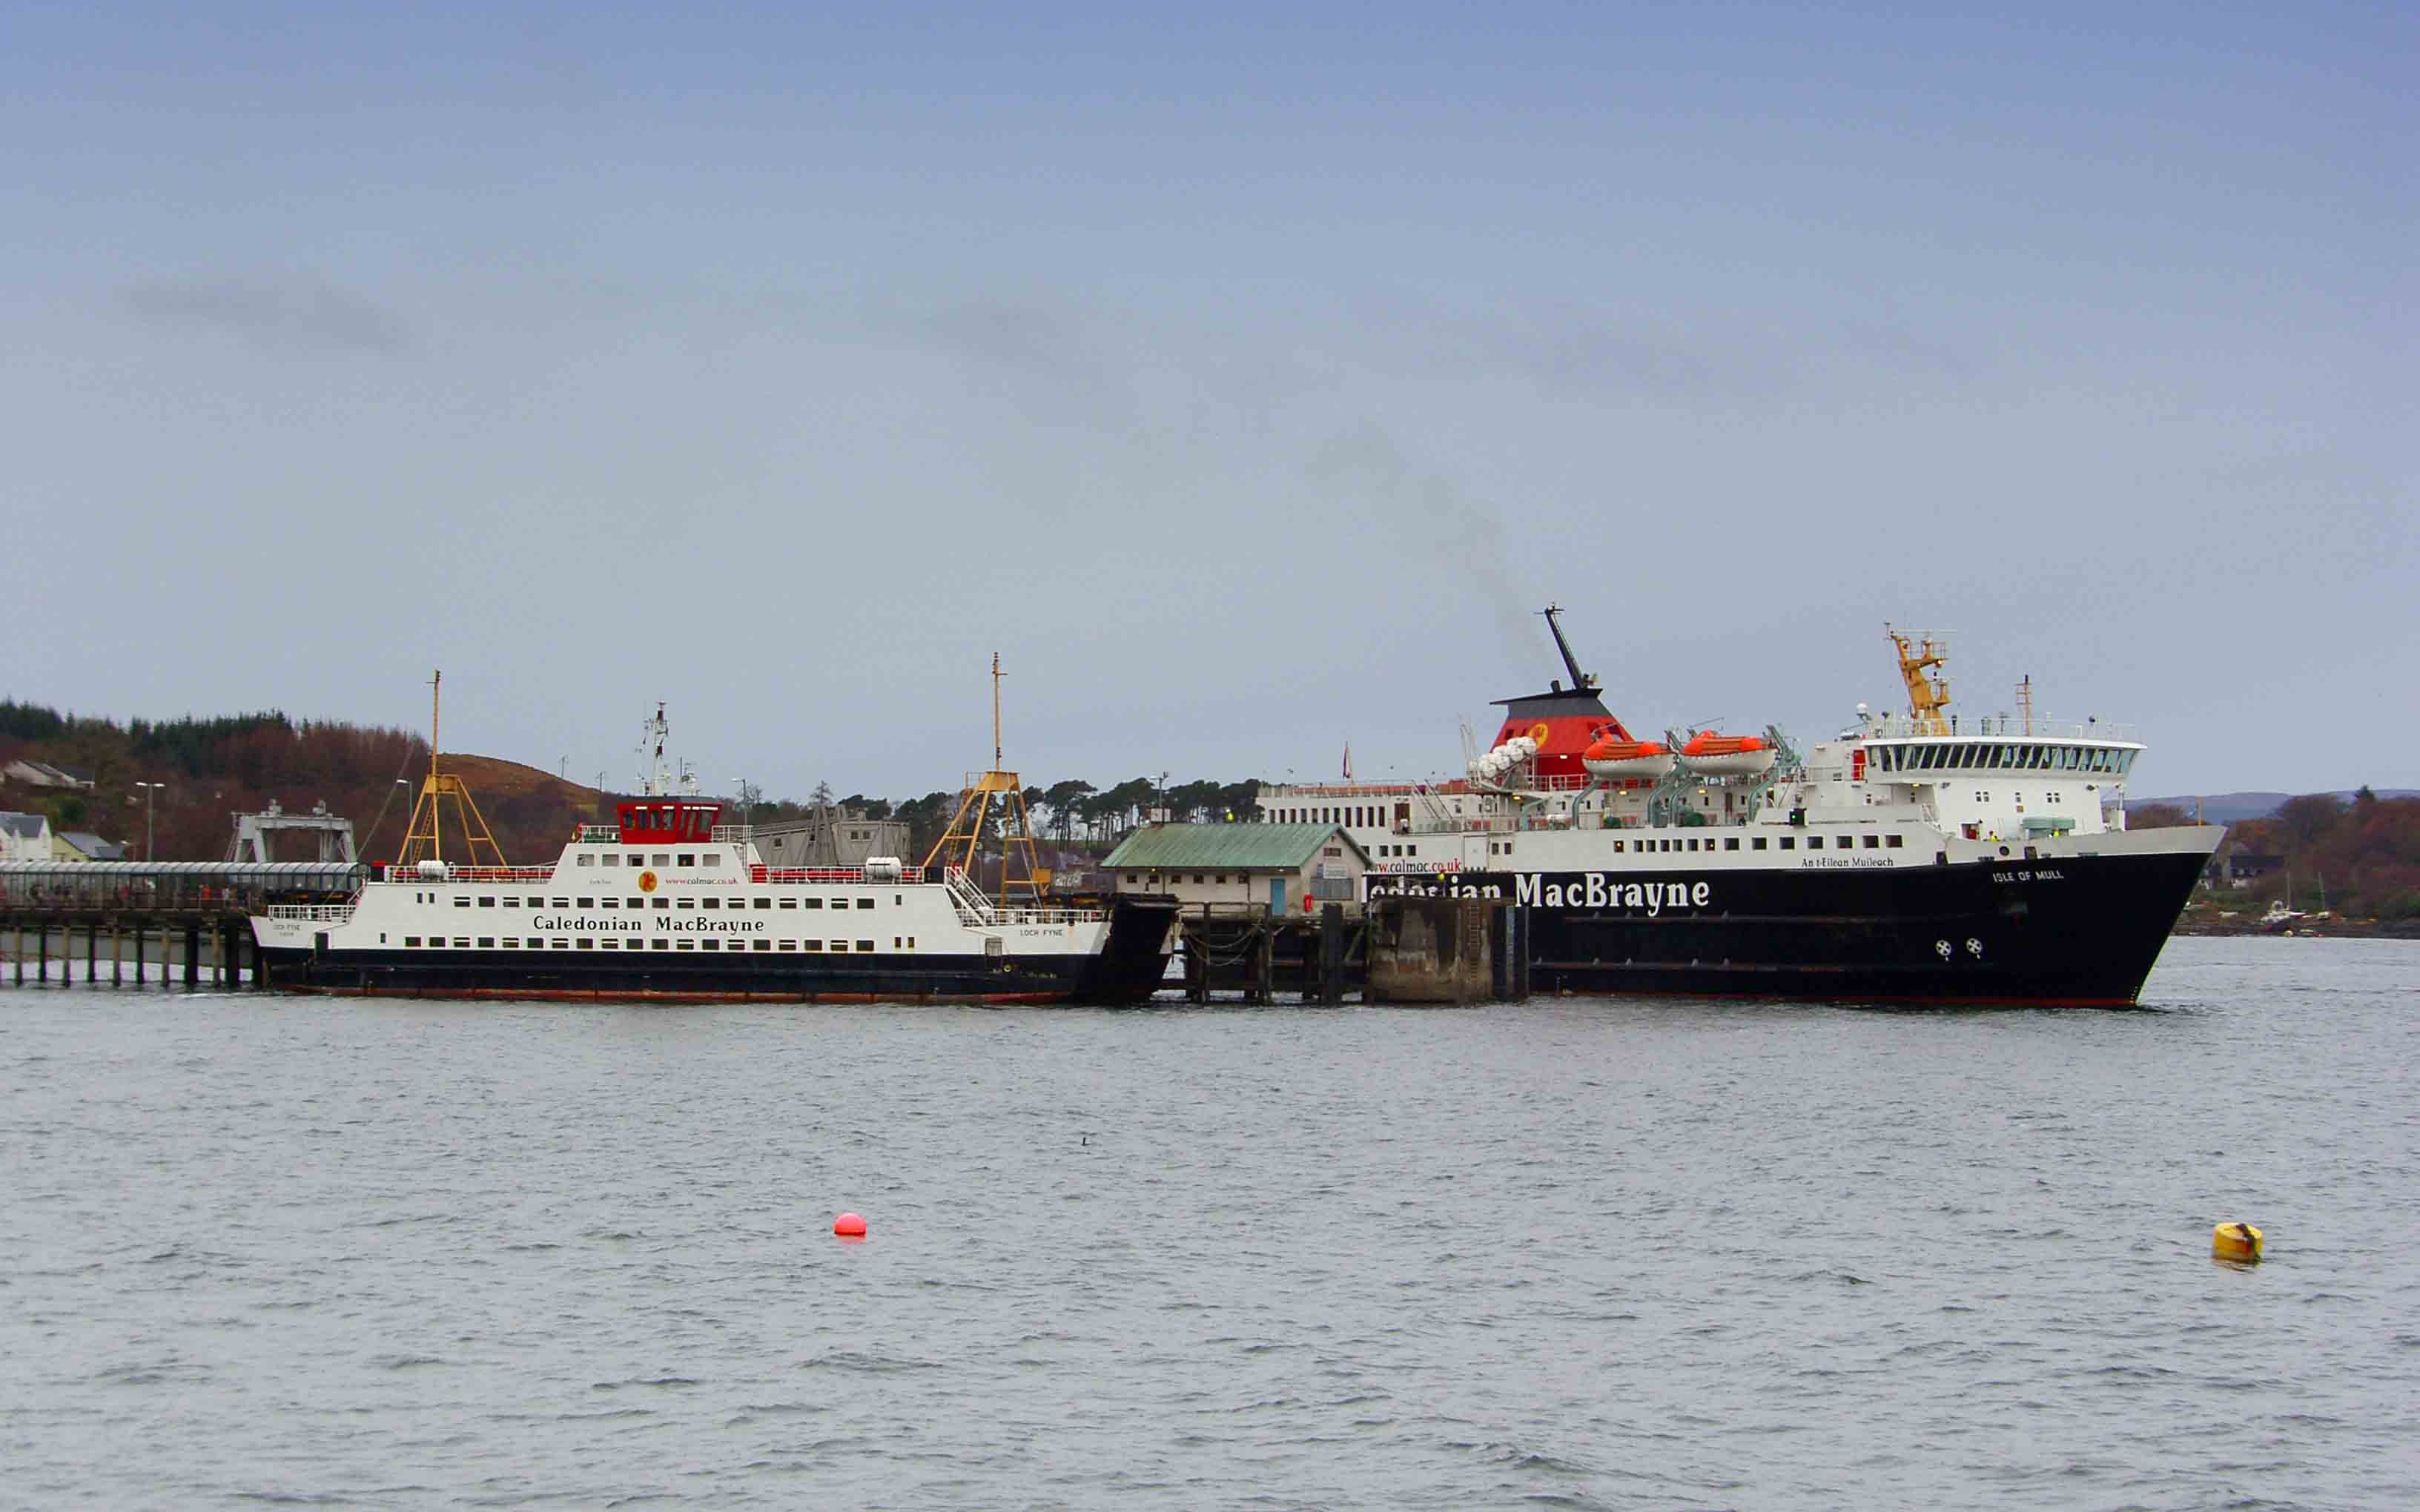 Loch Fyne at Craignure with Isle of Mull (Ships of CalMac)